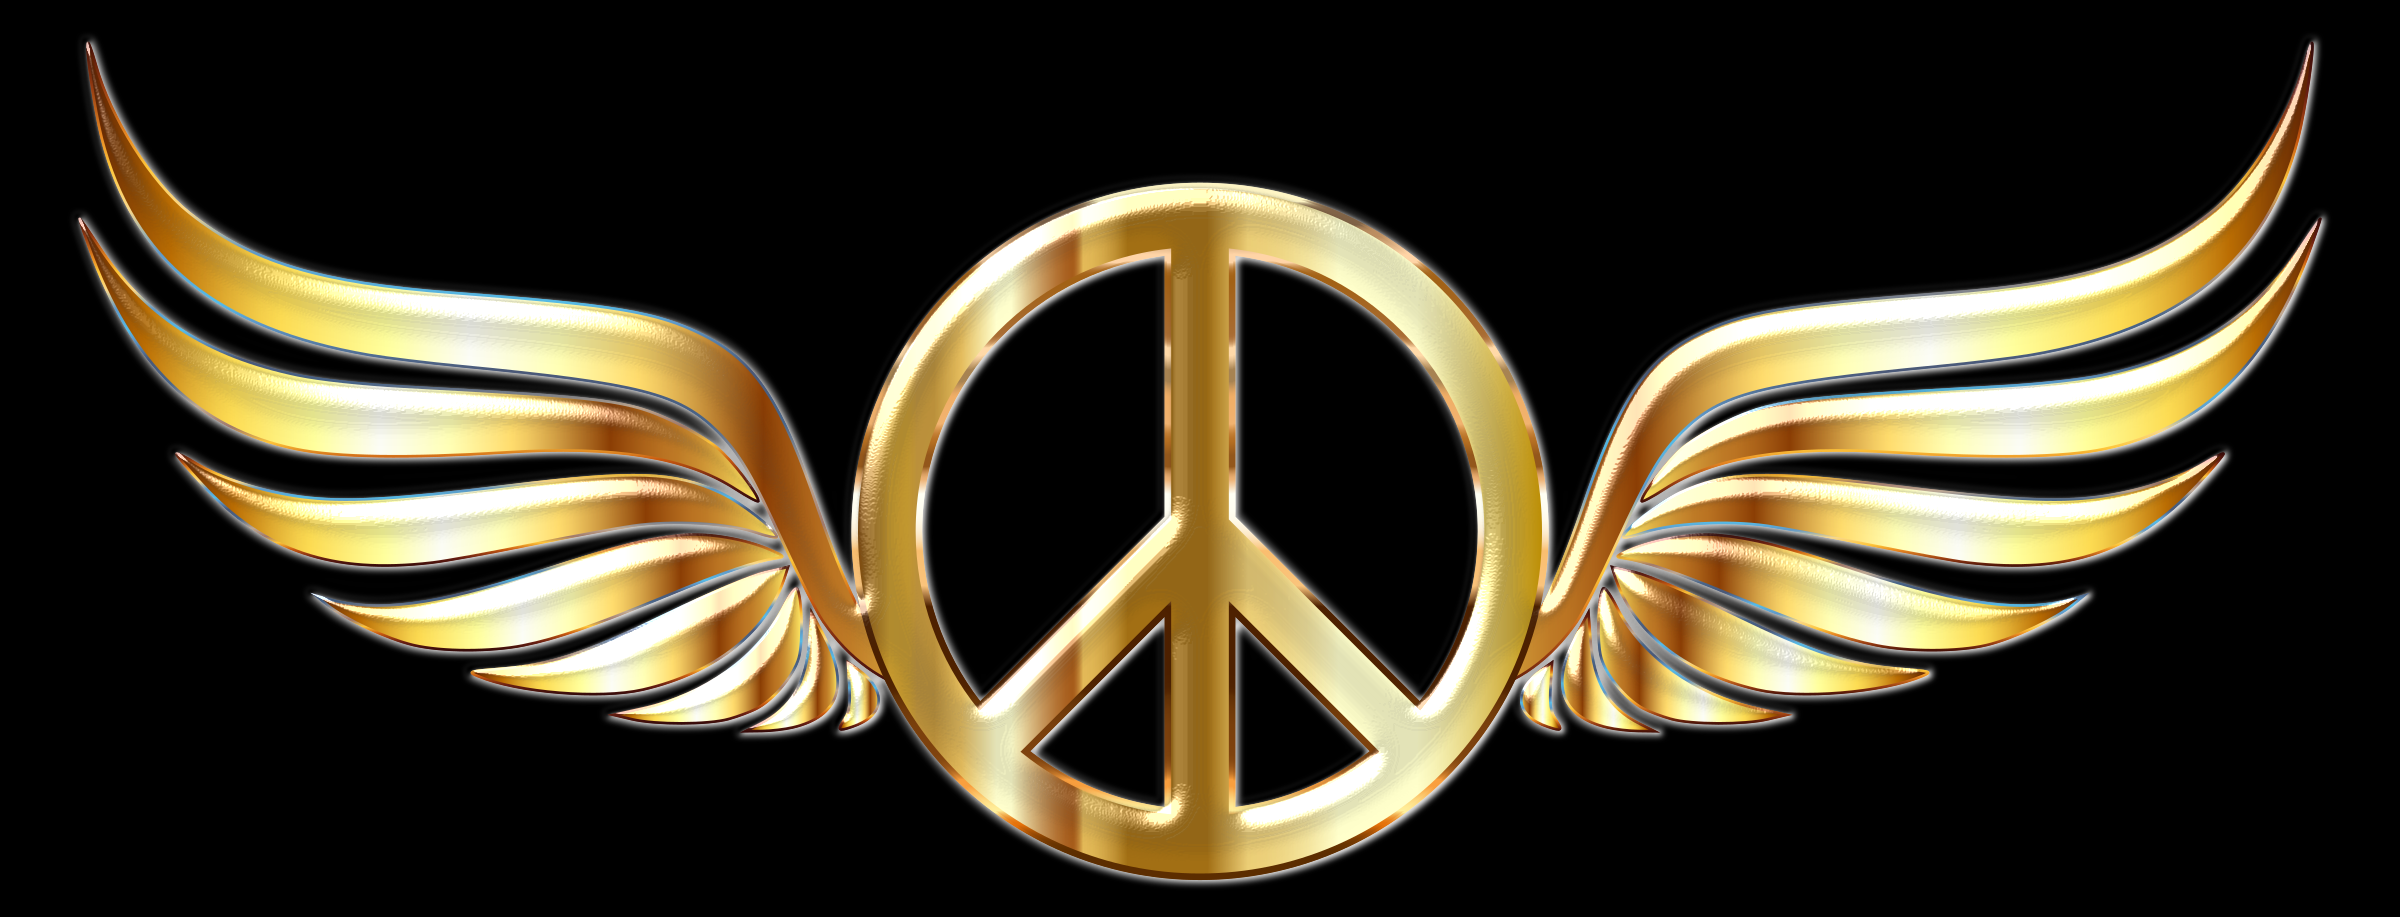 Gold Peace Sign Wings Enhanced 2 by GDJ